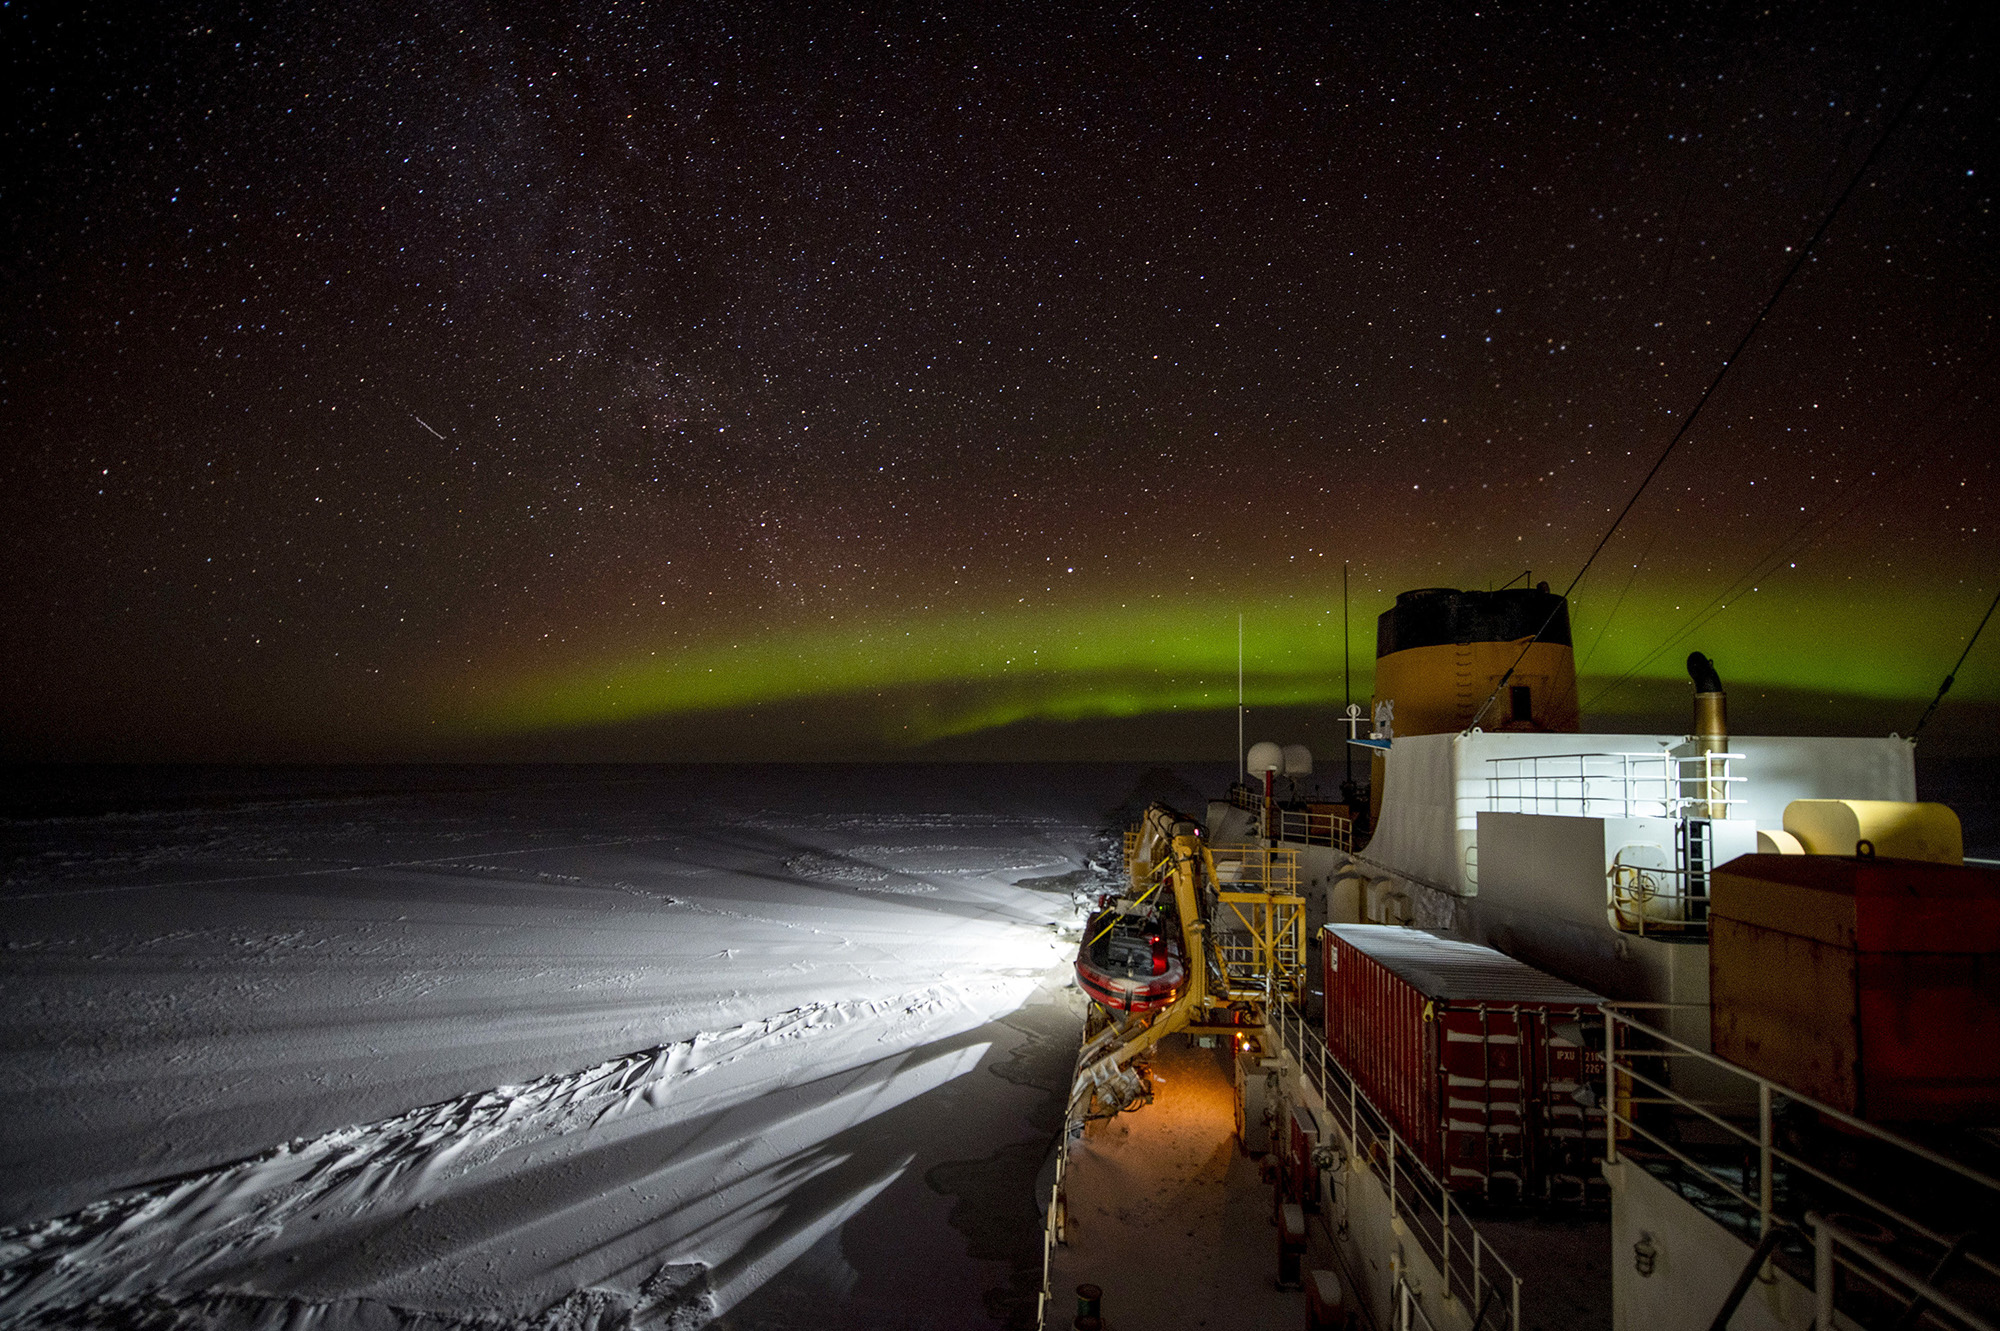 The Coast Guard Cutter Polar Star (WAGB 10) transits south in the Bering Strait early Jan. 19, 2021. The 45-year-old heavy icebreaker is underway to project power and support national security objectives throughout Alaskan waters and into the Arctic, including along the Maritime Boundary Line between the United States and Russia. (Petty Officer 1st Class Cynthia Oldham/Coast Guard)